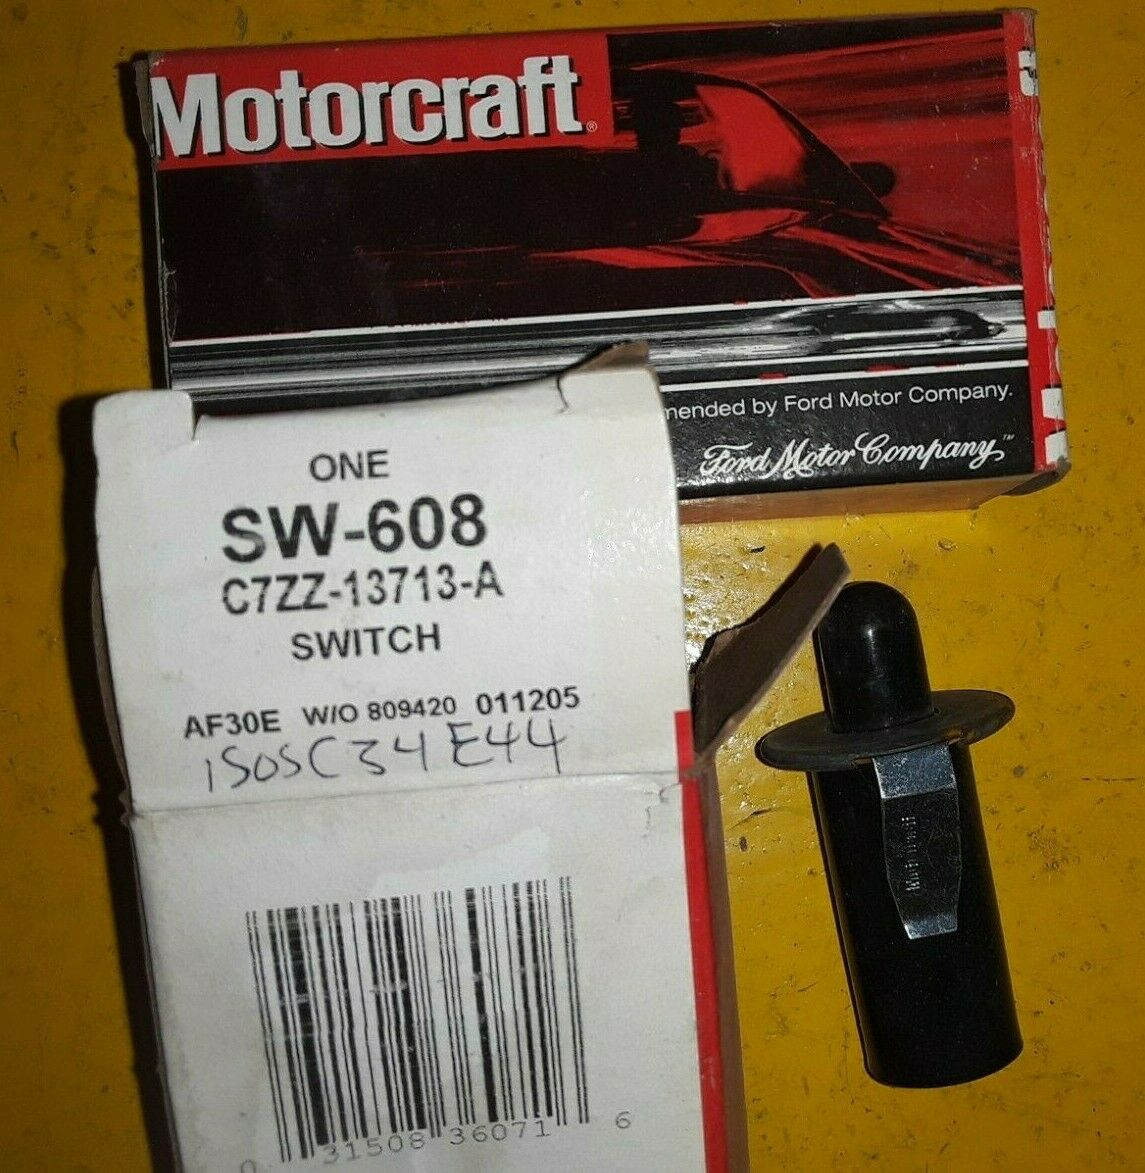 Door Jamb Switch Motorcraft SW-608 / C7ZZ-13713-A (QTY 2)